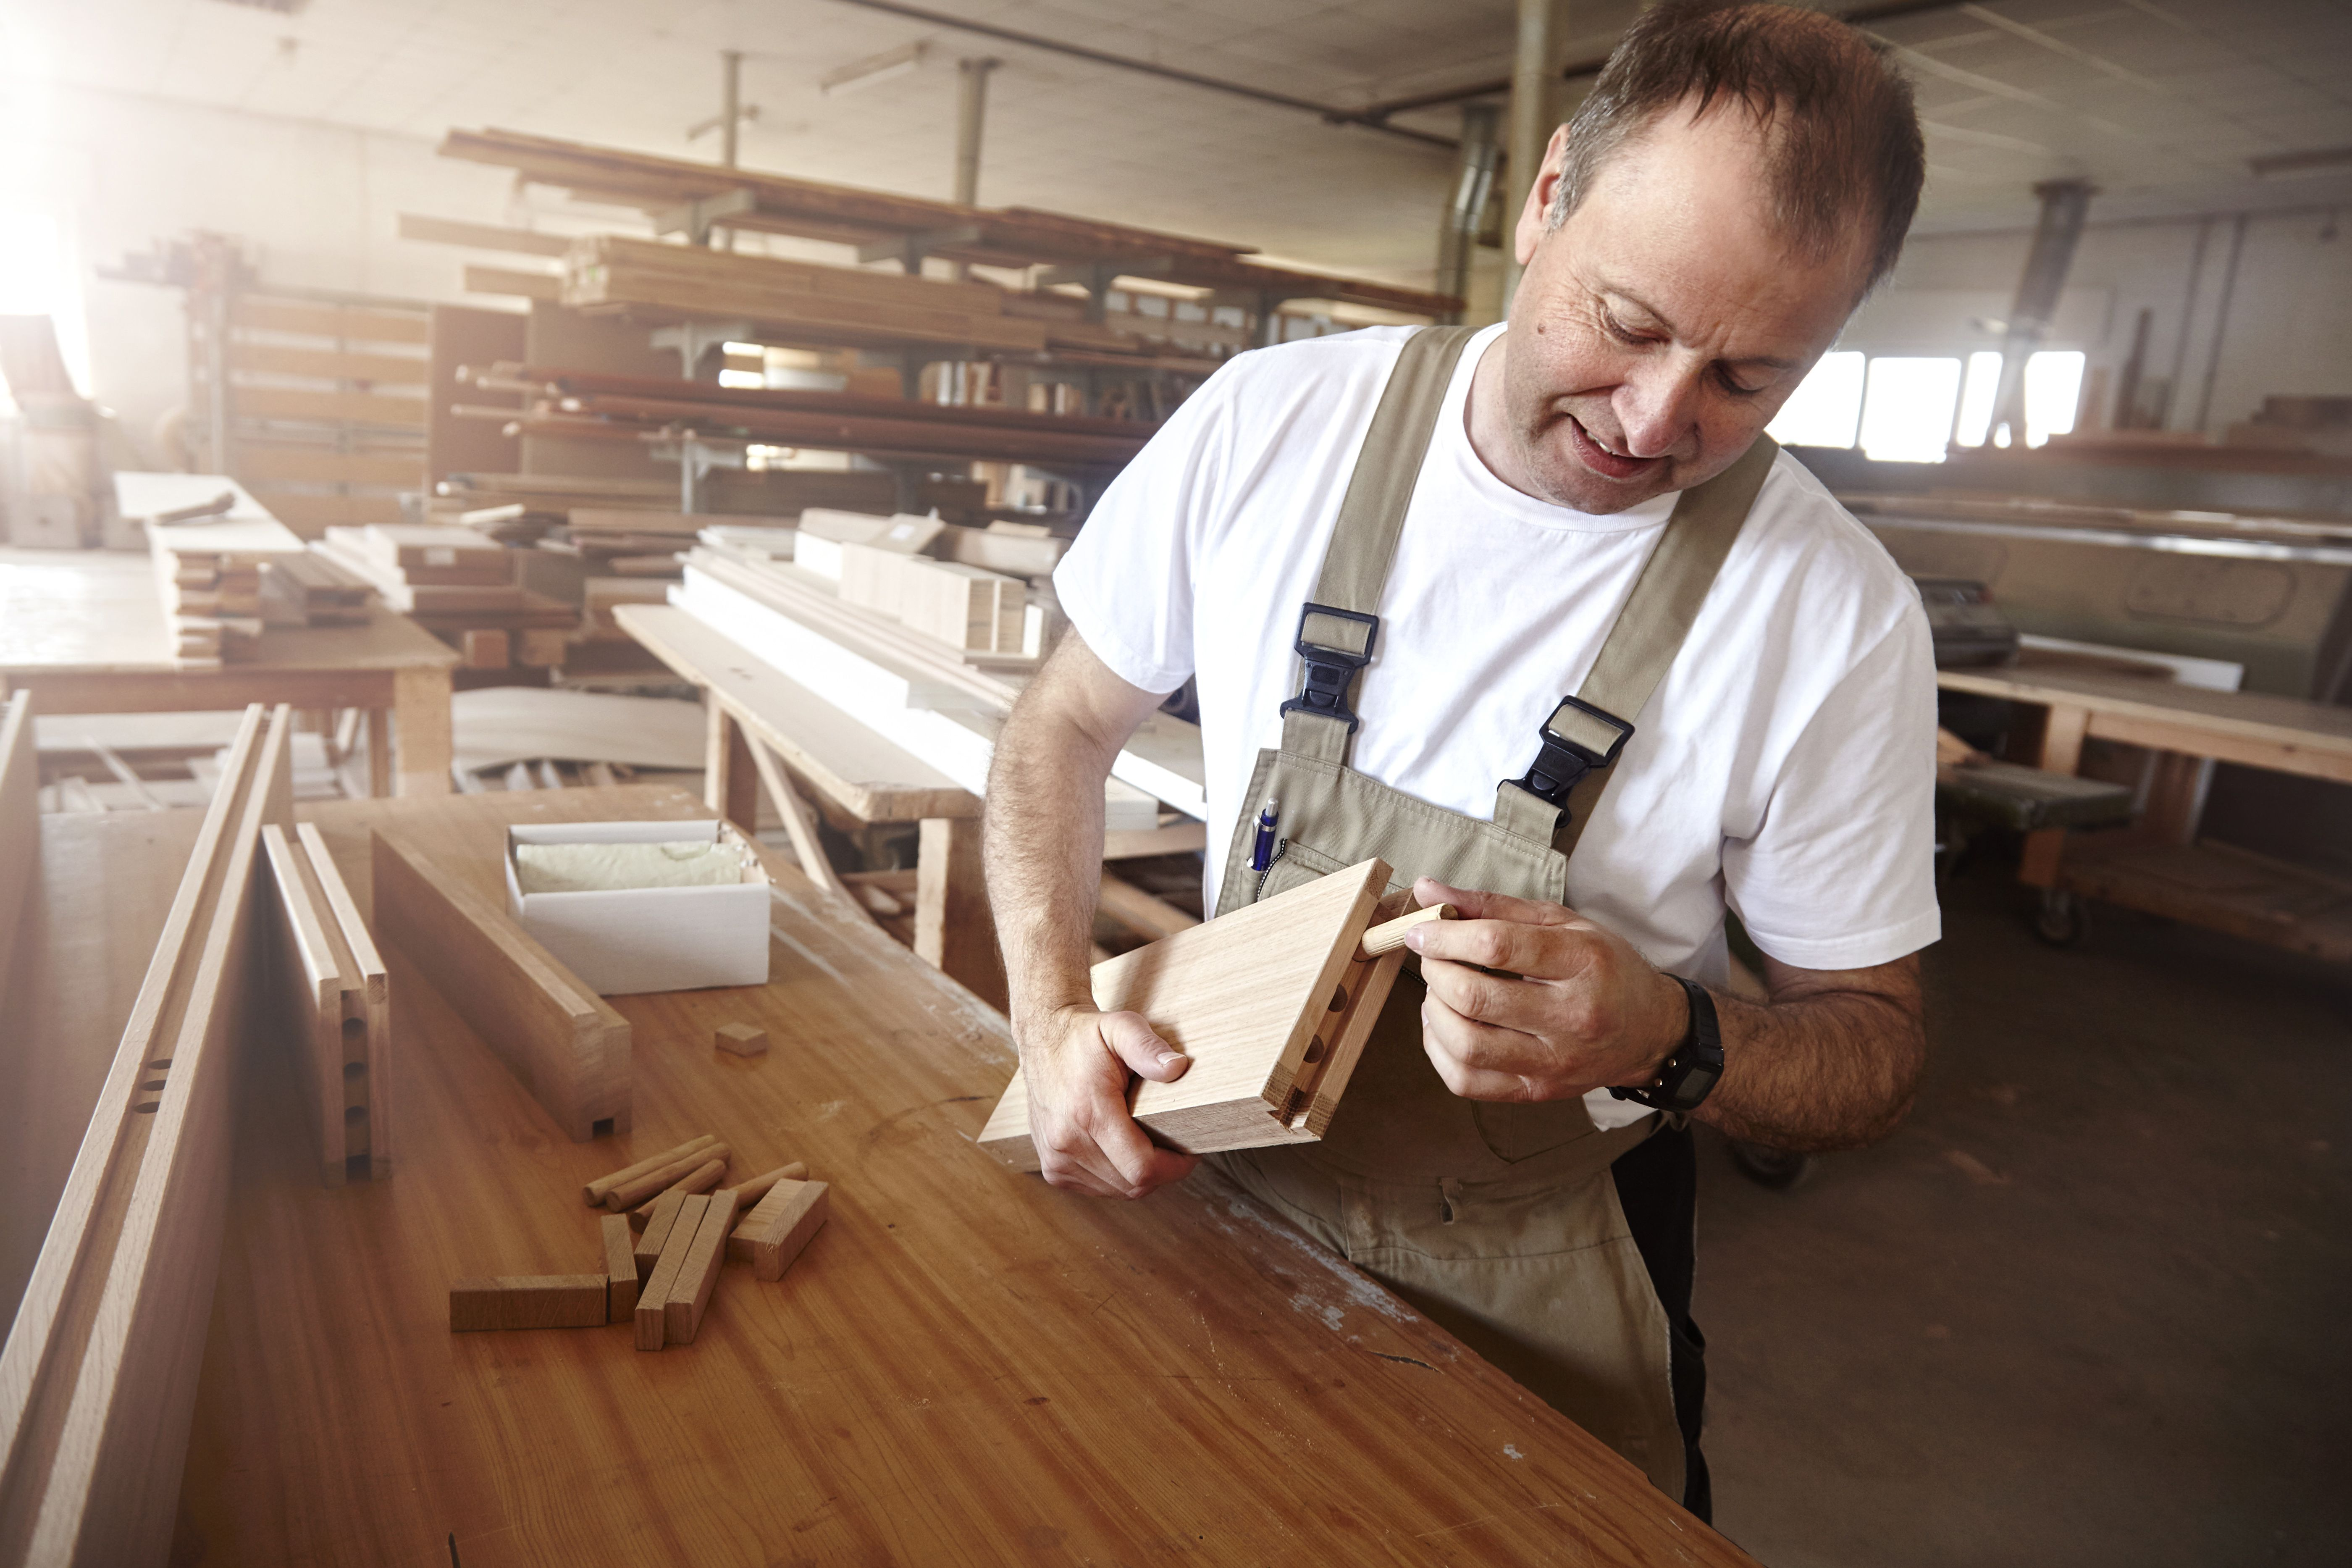 Male carpenter inserting wooden dowel at workbench